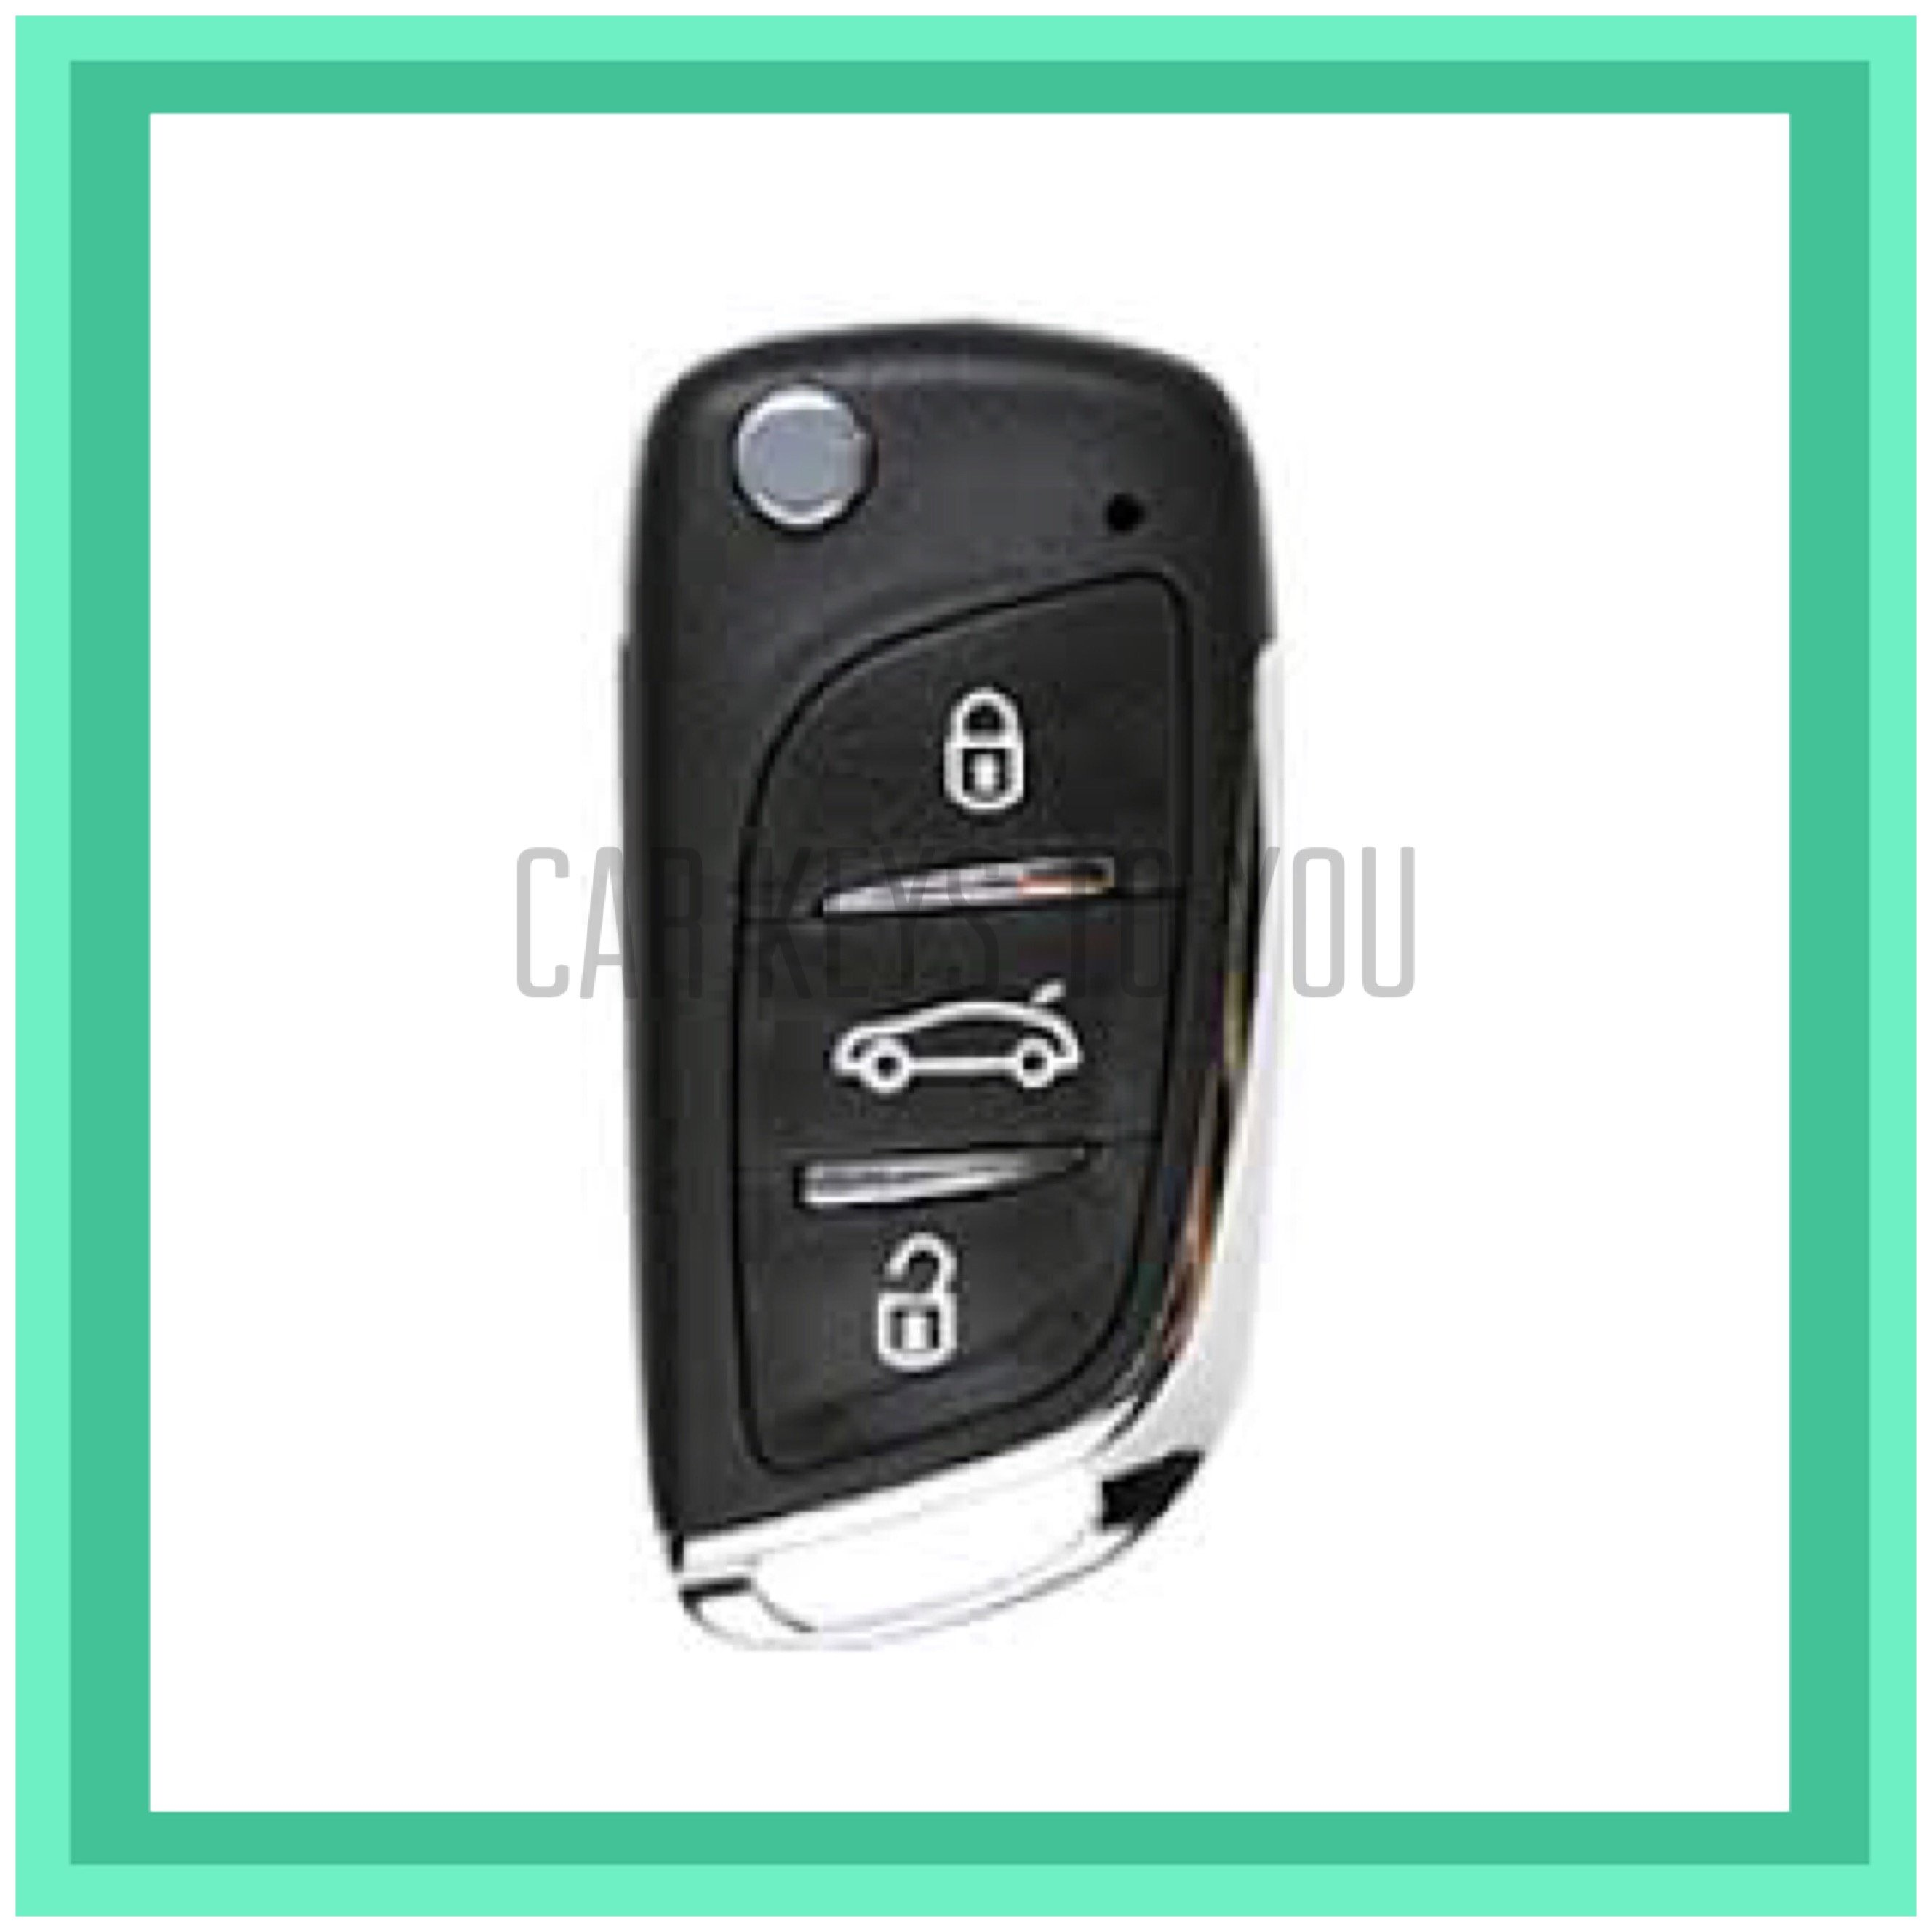 Great Wall V240 K2 Car Key and Remote, 2009-2011